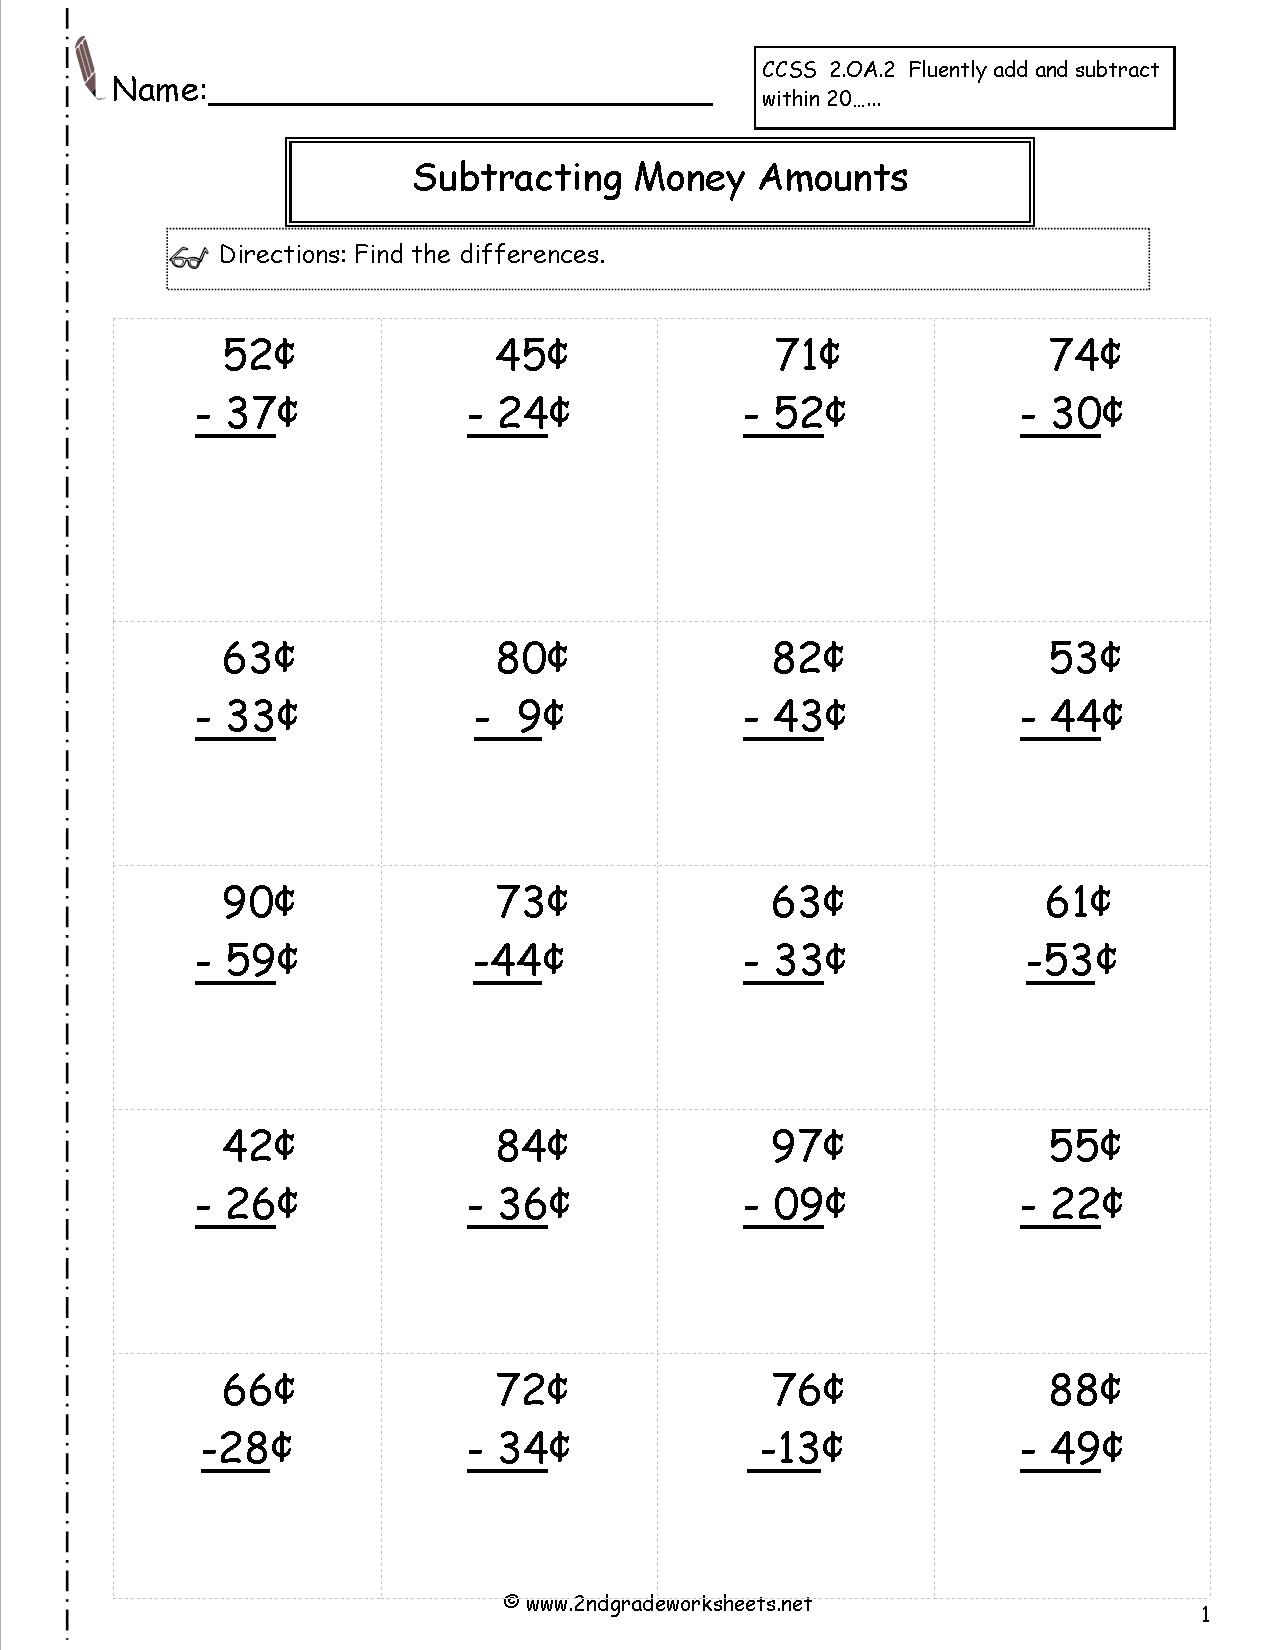 8 Best Images Of Adding And Subtracting Money Worksheets